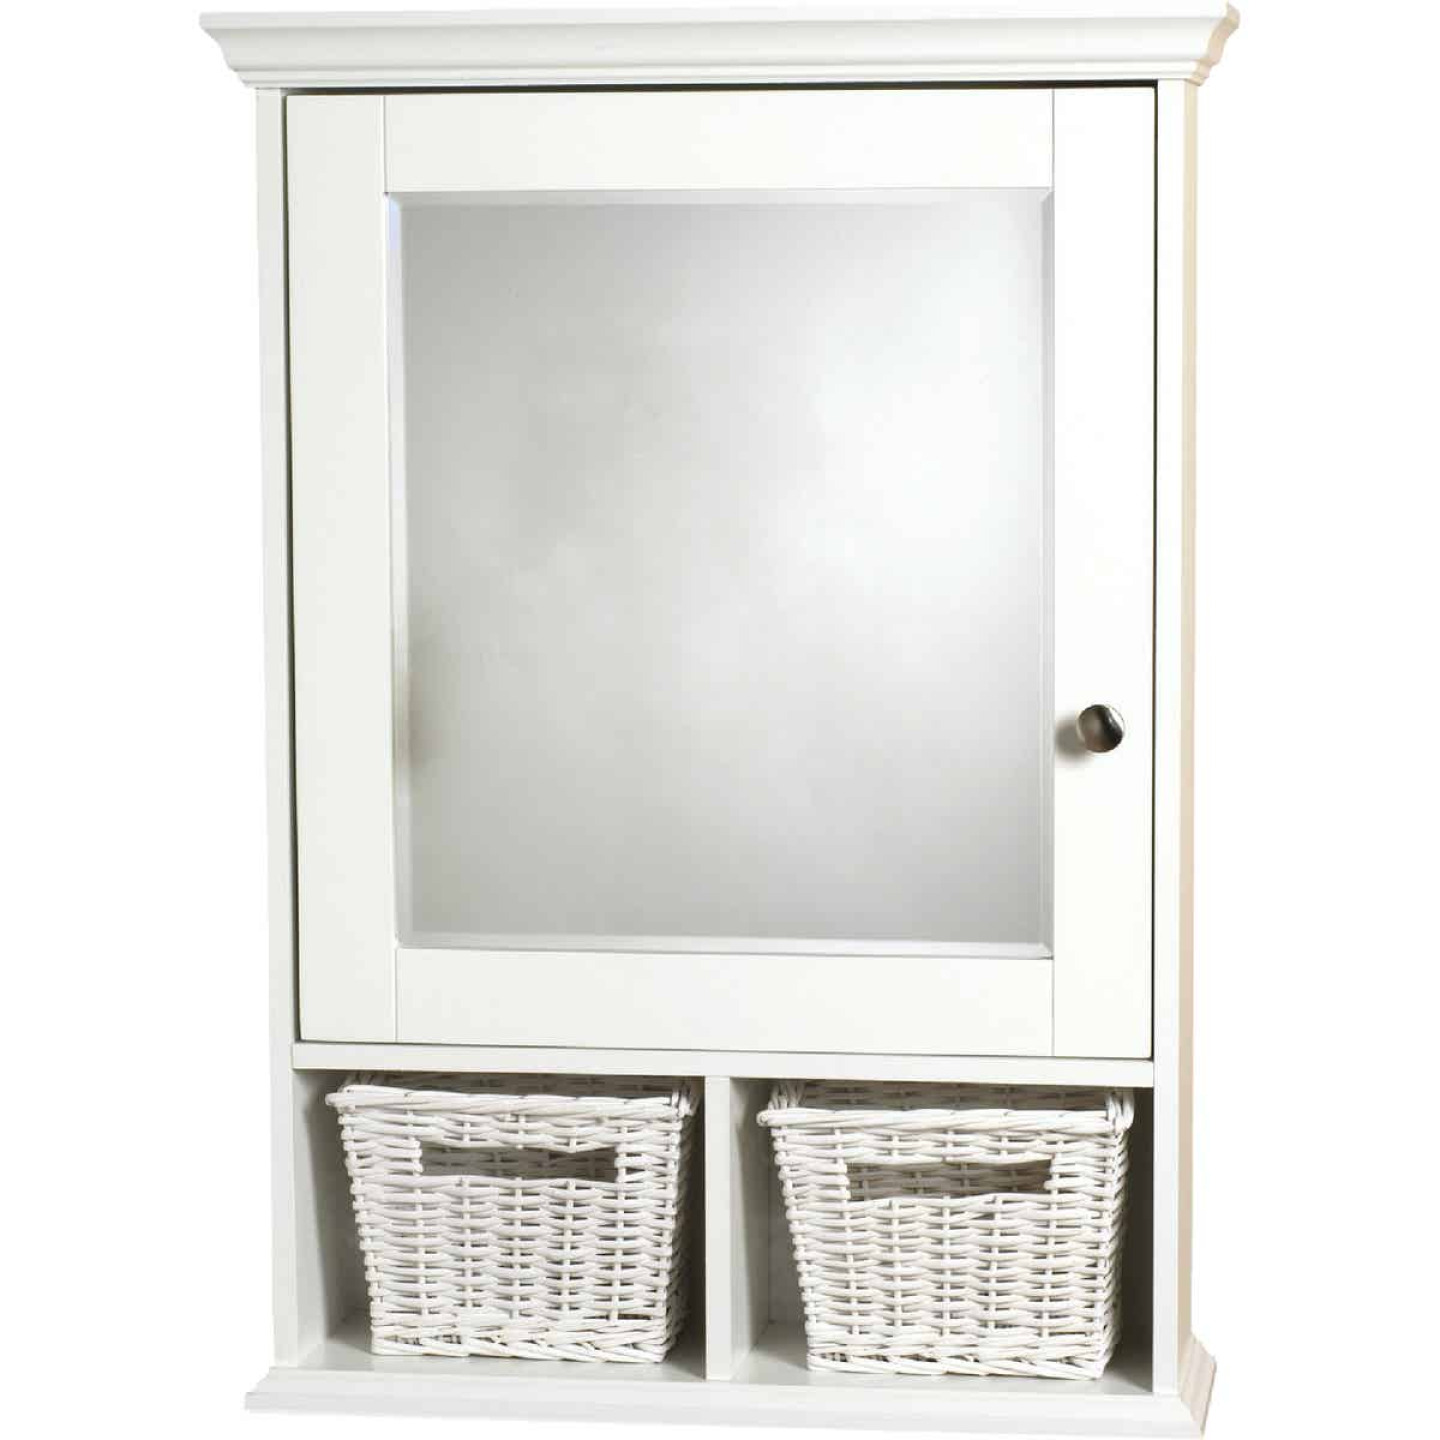 Zenith White 21 In. W x 29 In. H x 6-1/2 In. D Single Mirror Surface Mount Medicine Cabinet with Baskets Image 1